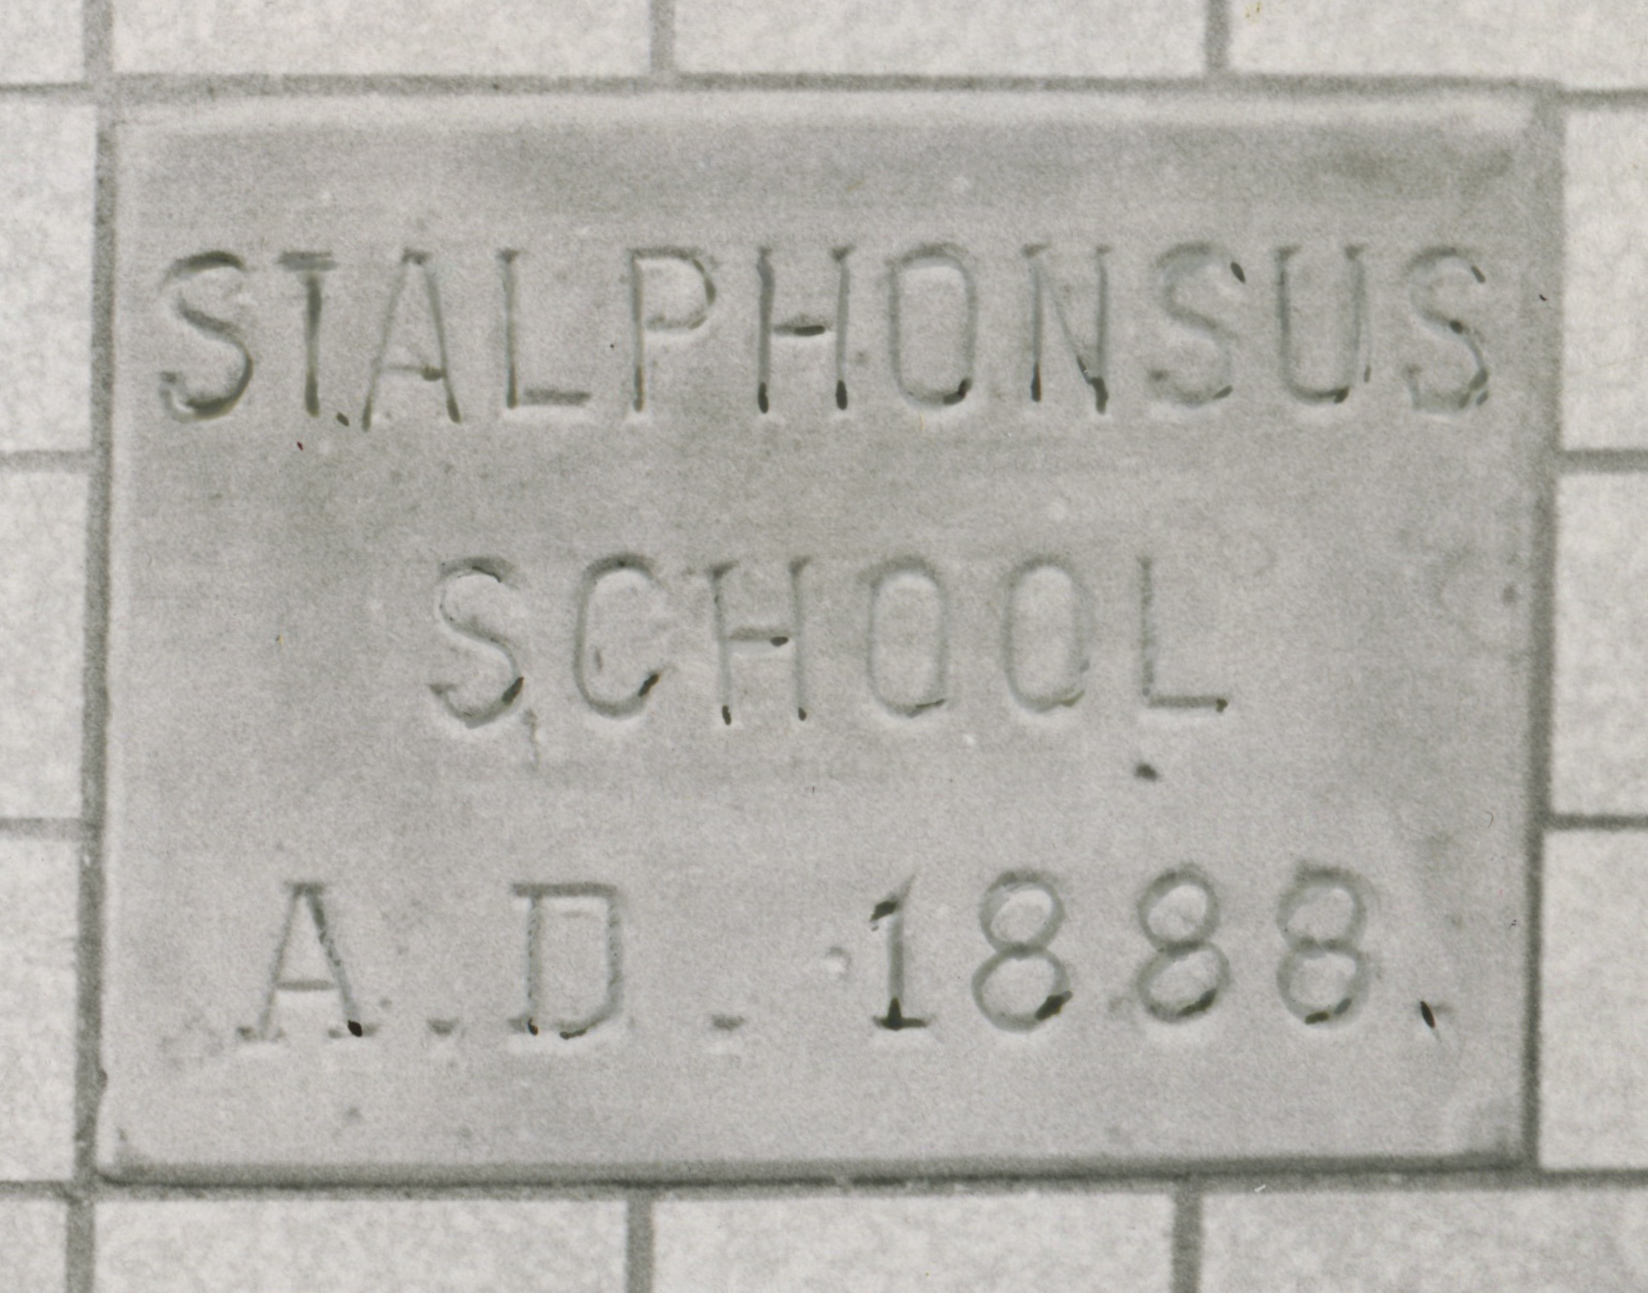 1889 - The Dominican Sisters started a school at St. Alphonsus Parish.